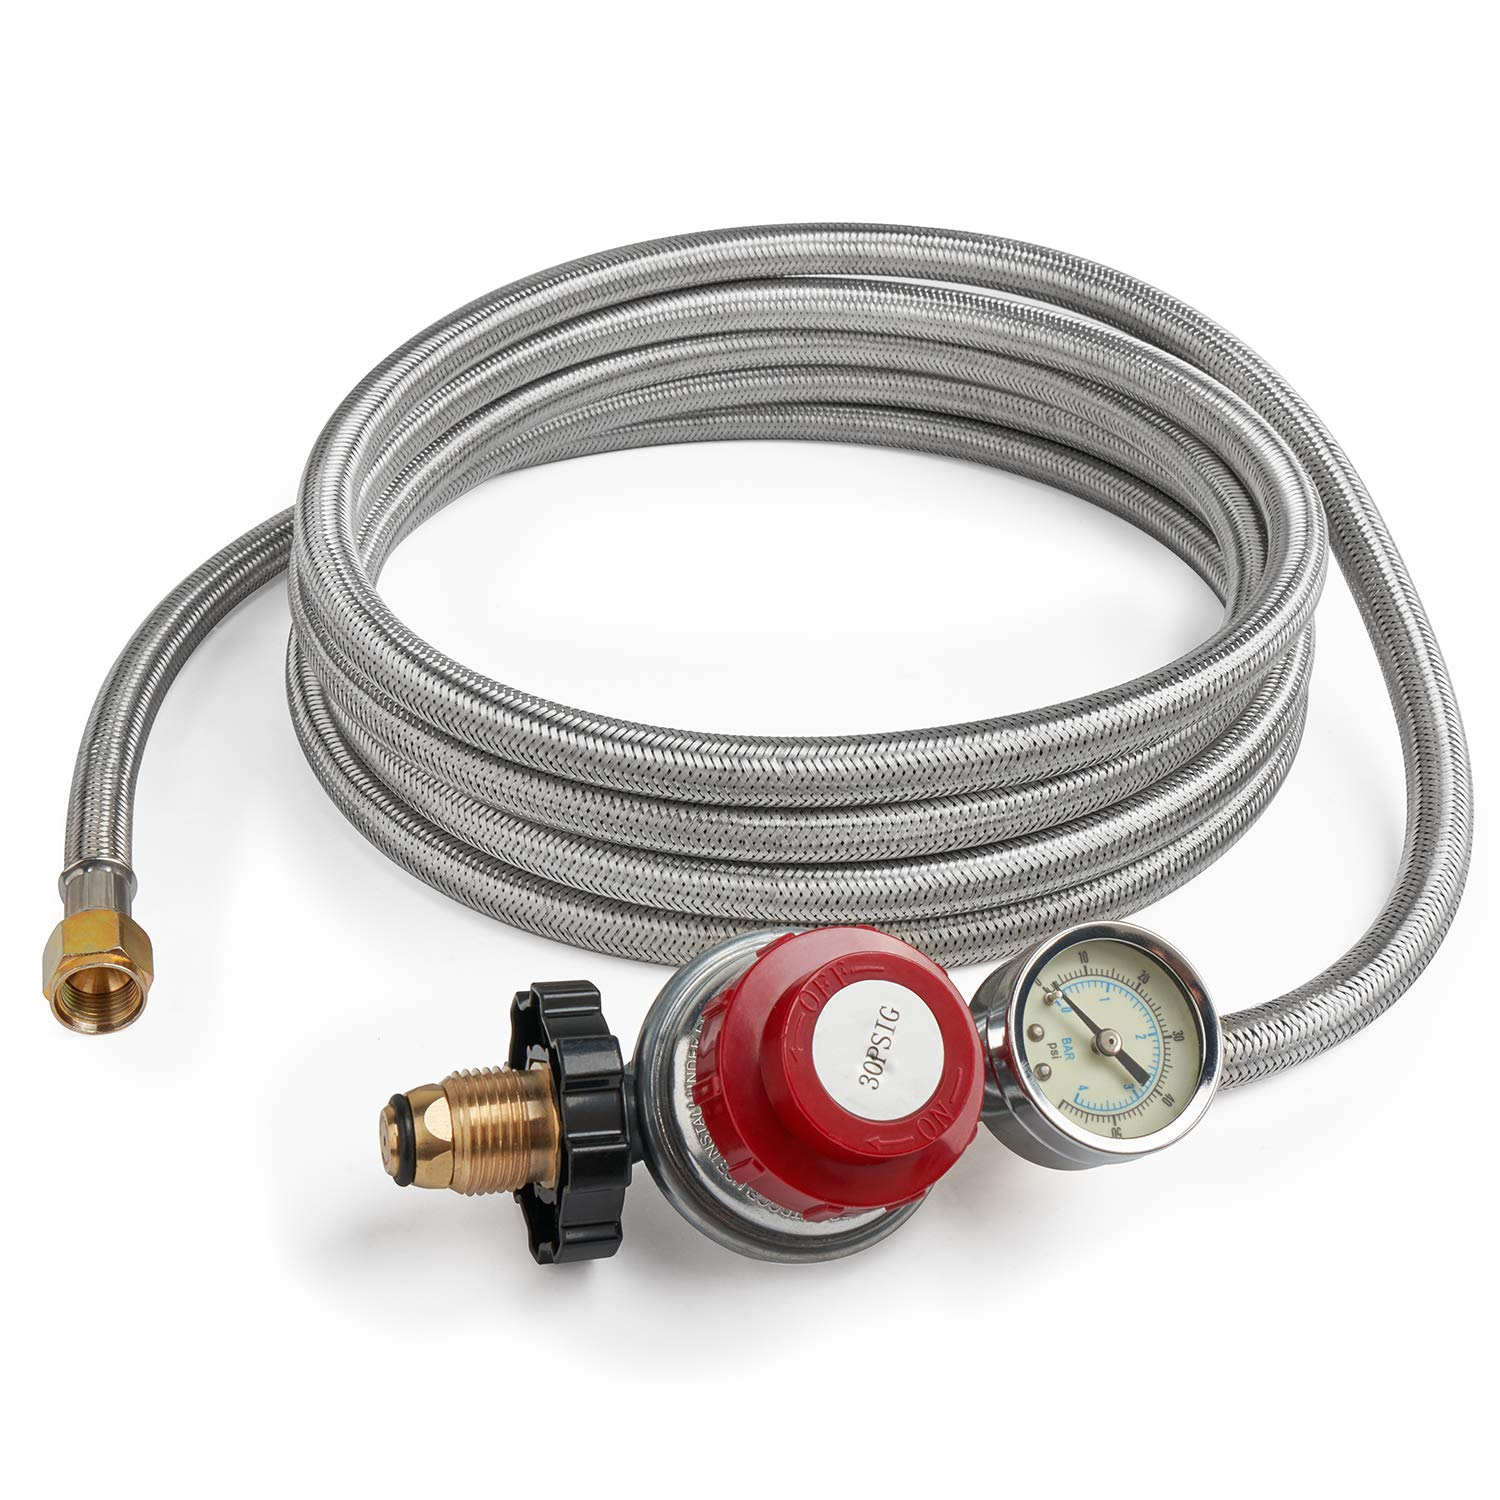 GASPRO 12 Foot 0-30 PSI High Pressure Adjustable Propane Regulator with Gauge/Indicator, Stainless Steel Braided Hose, Gas Grill LP Regulator for Burner, Turkey Fryer, Forge, Smoker and More. by GASPRO